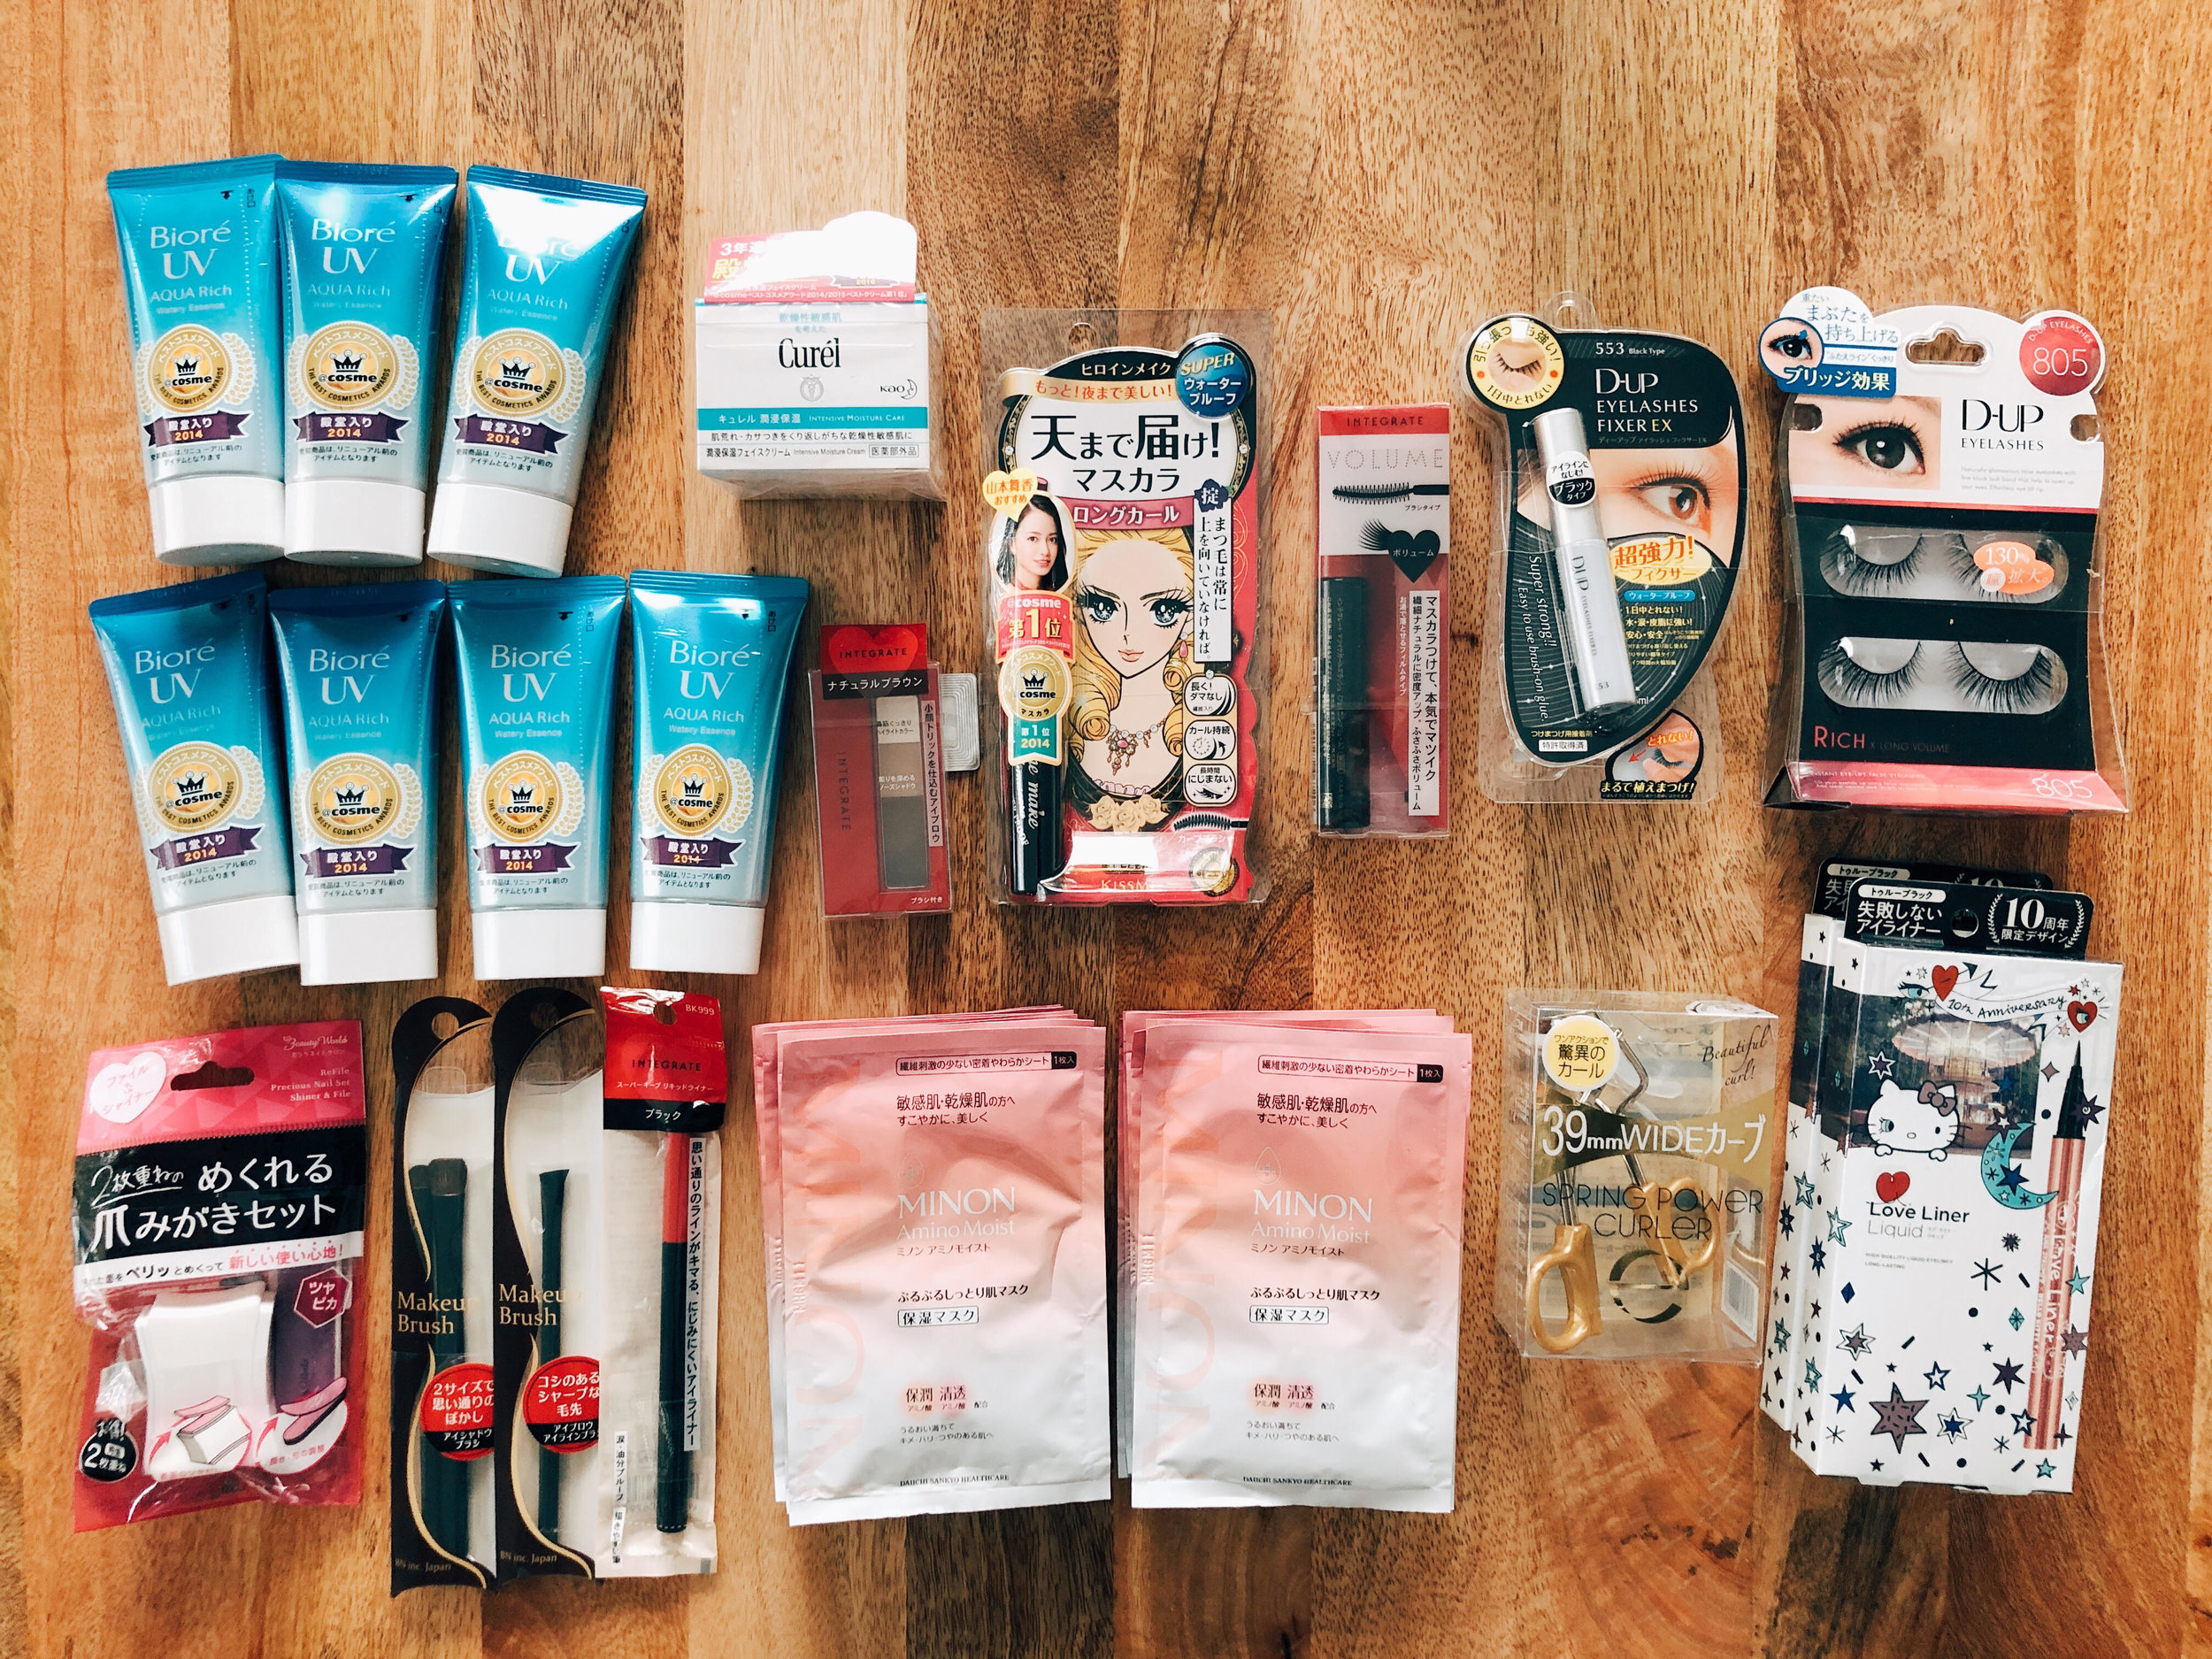 Japan drugstore beauty product haul